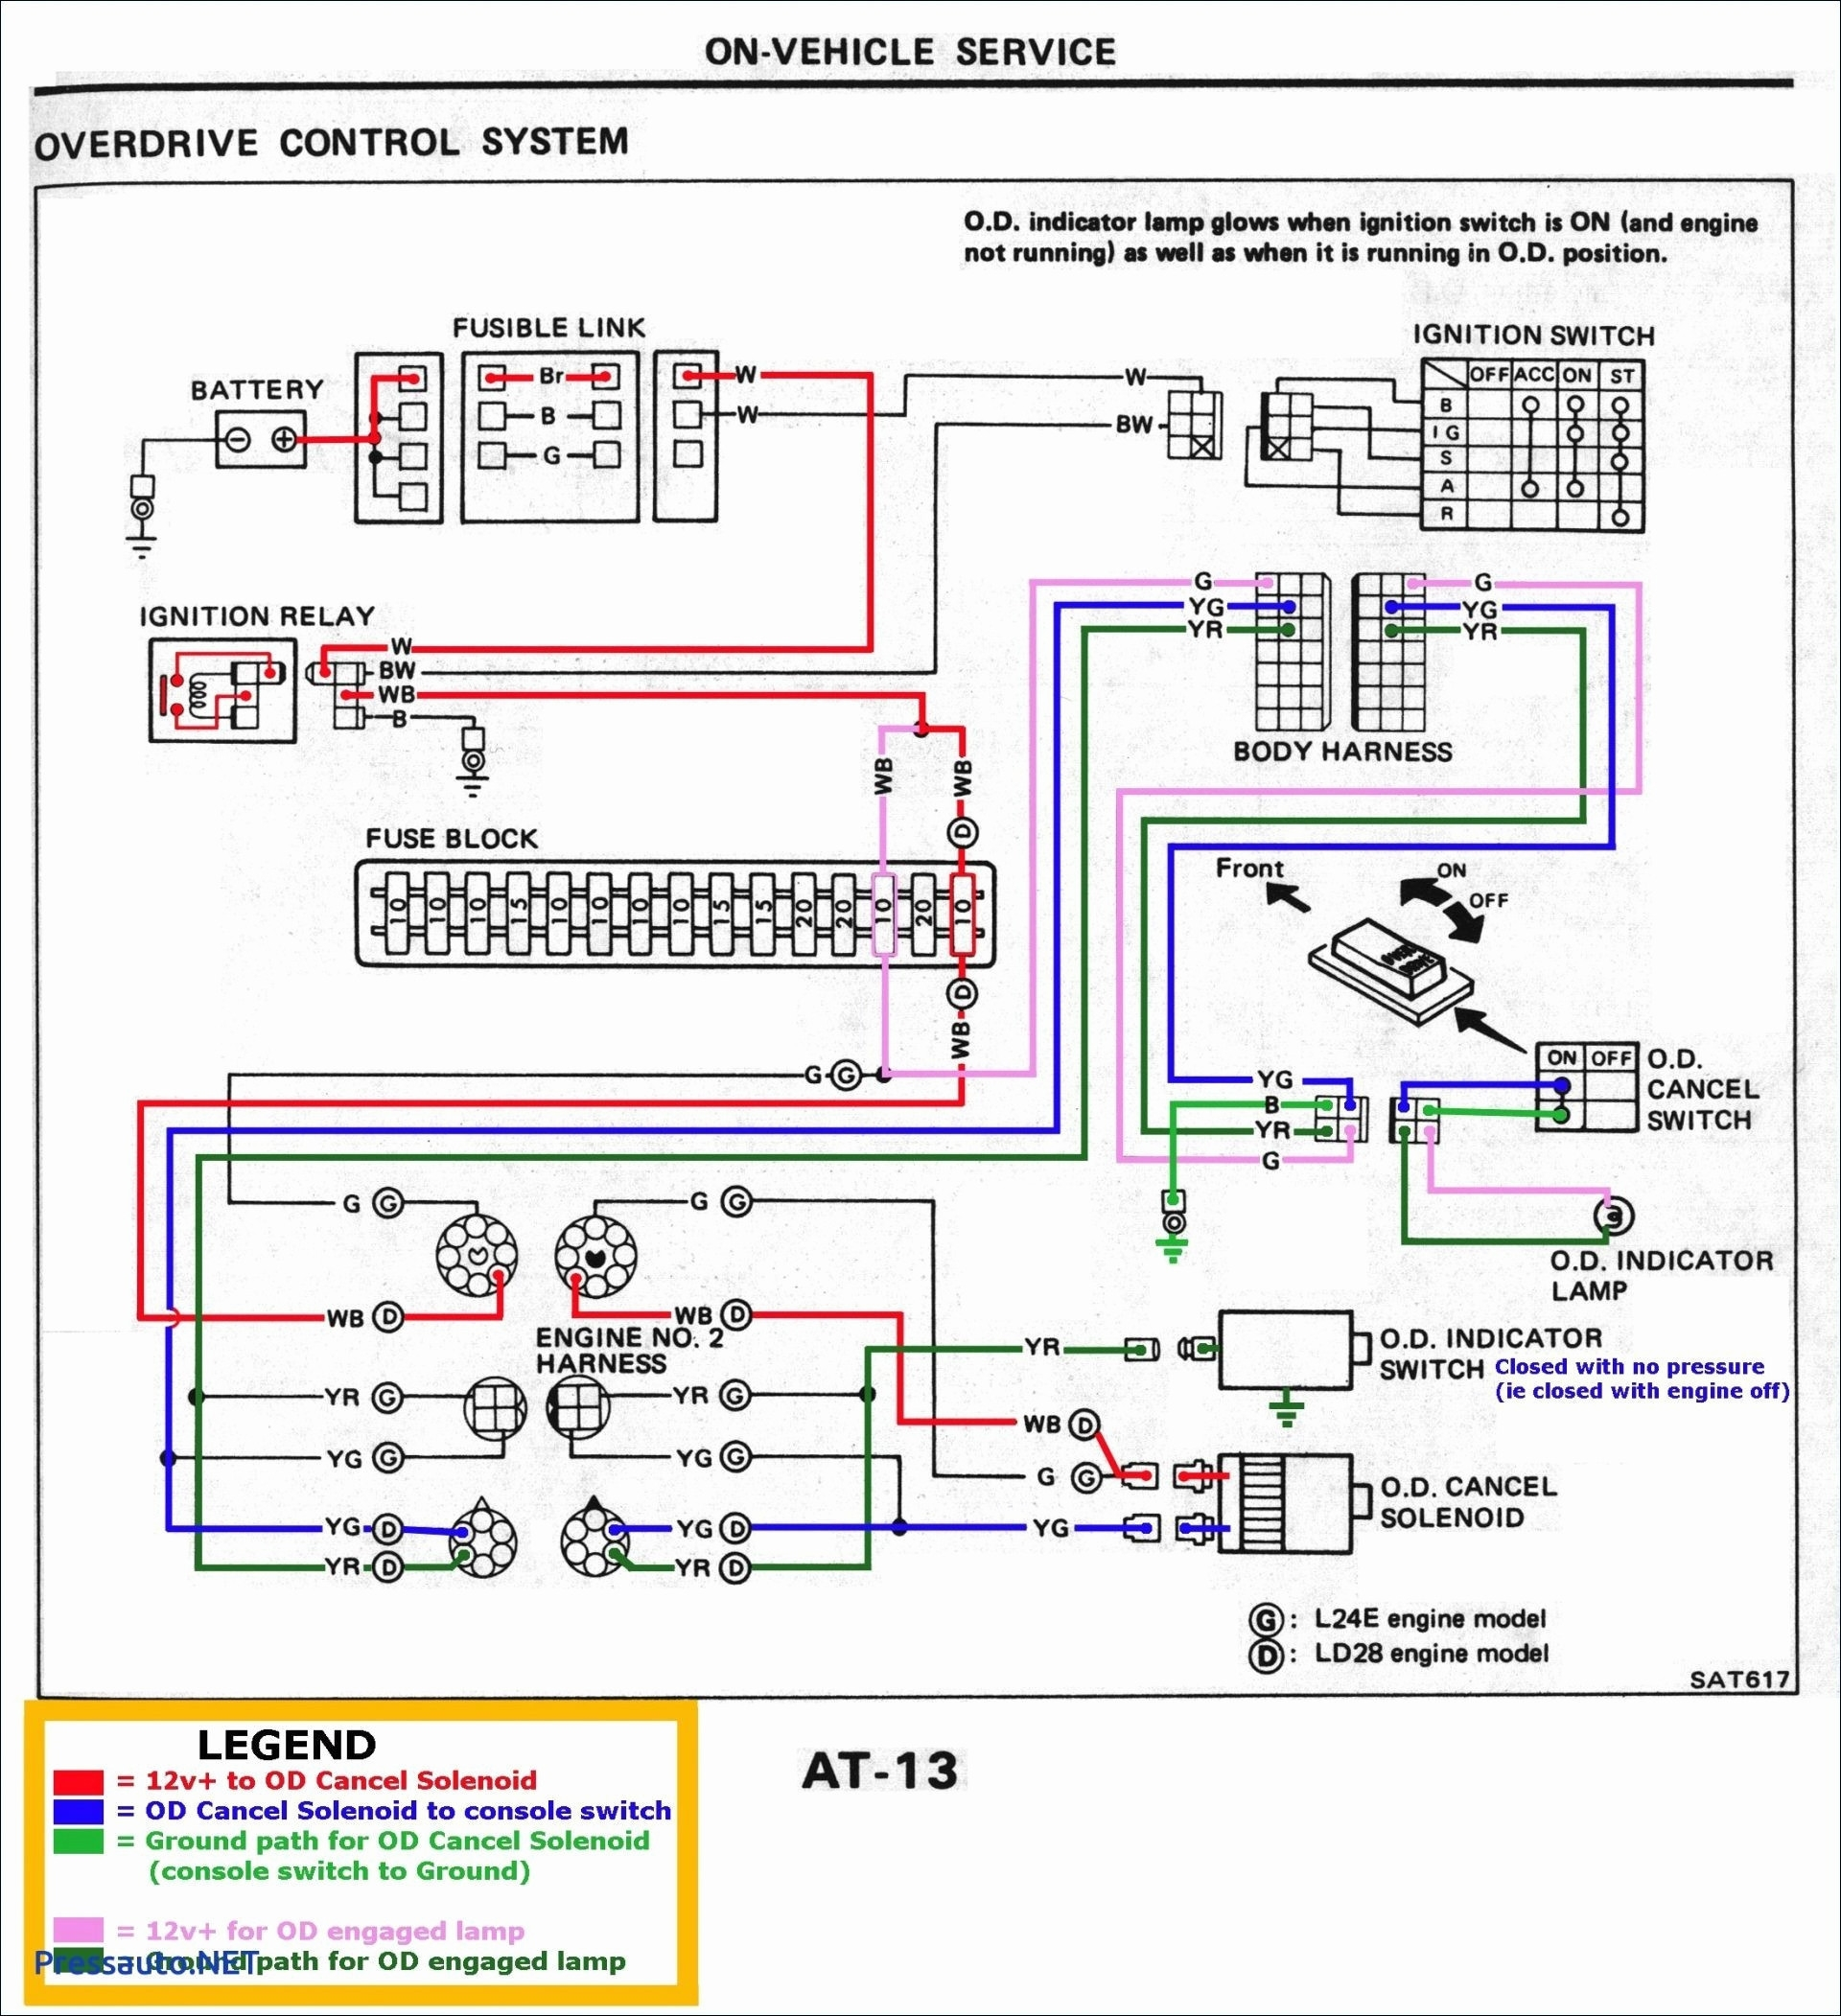 timer relay wiring diagram Download-Wiring Diagram Timer Relay Fresh Wiring Diagram Time Delay Relay Valid Glow Relay Wiring Diagram 18-m